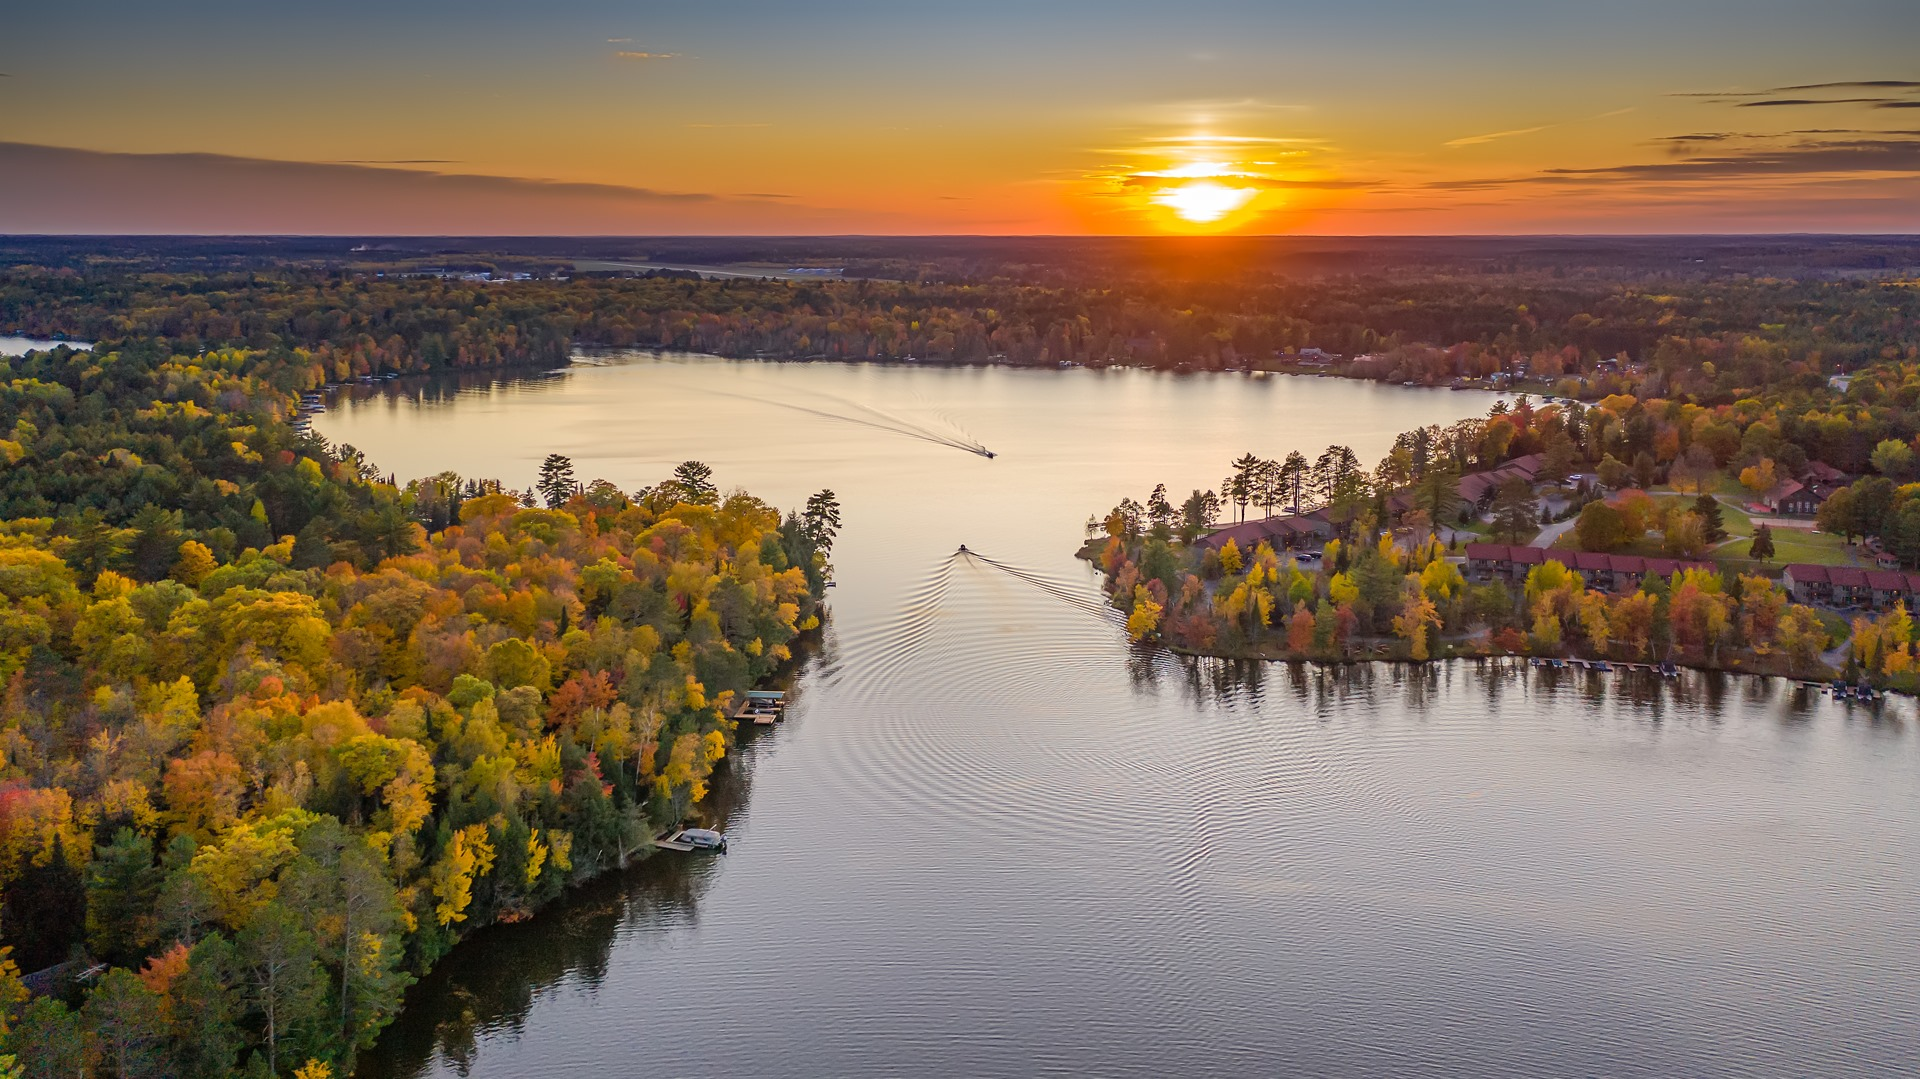 eagle-river-chain-of-lakes-sunset-aerial